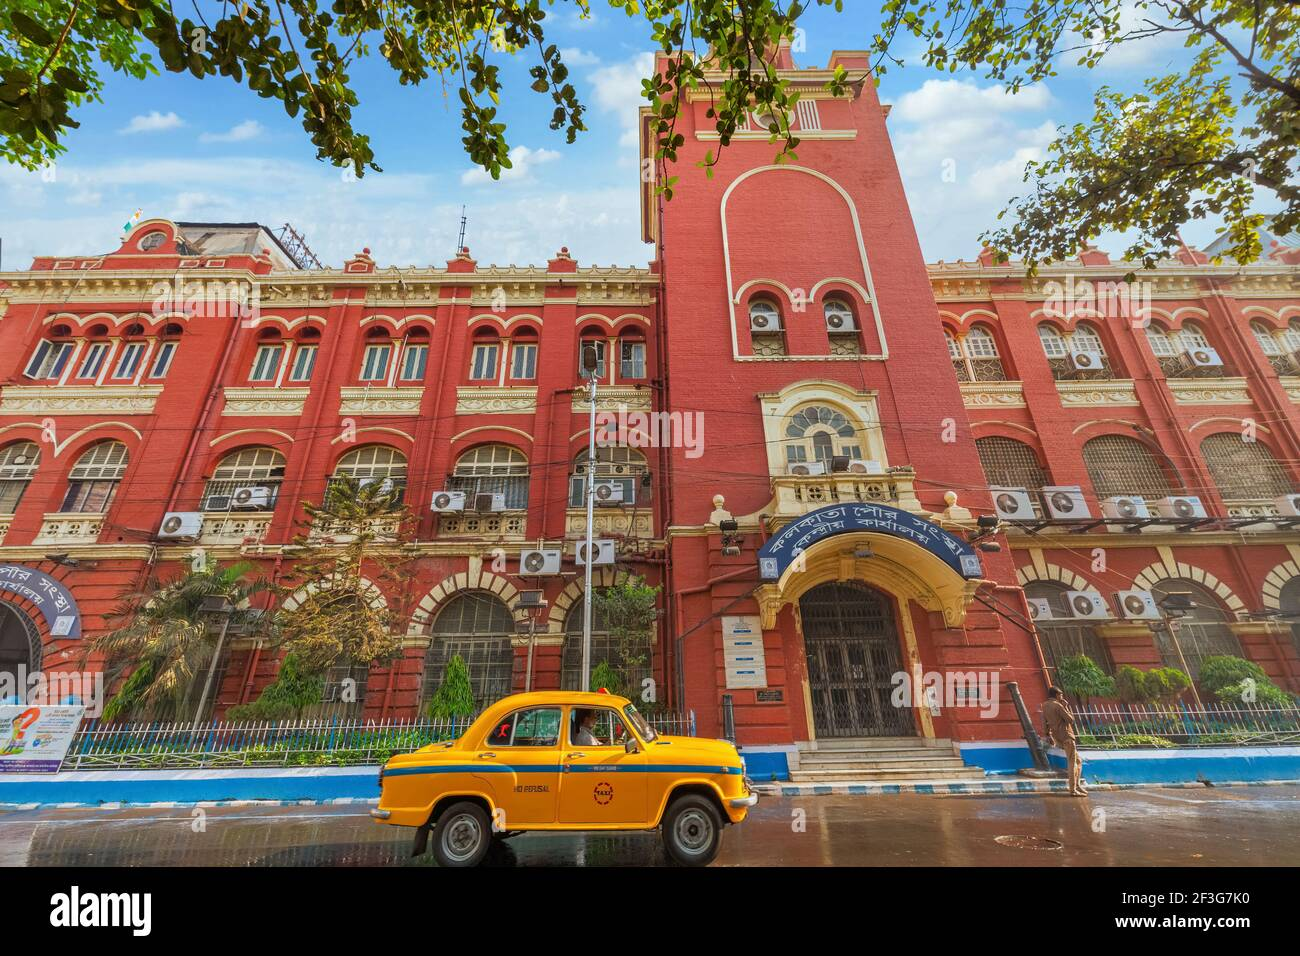 Yellow taxi in front of Government Municipal Corporation building built in colonial architecture style at Kolkata, India Stock Photo